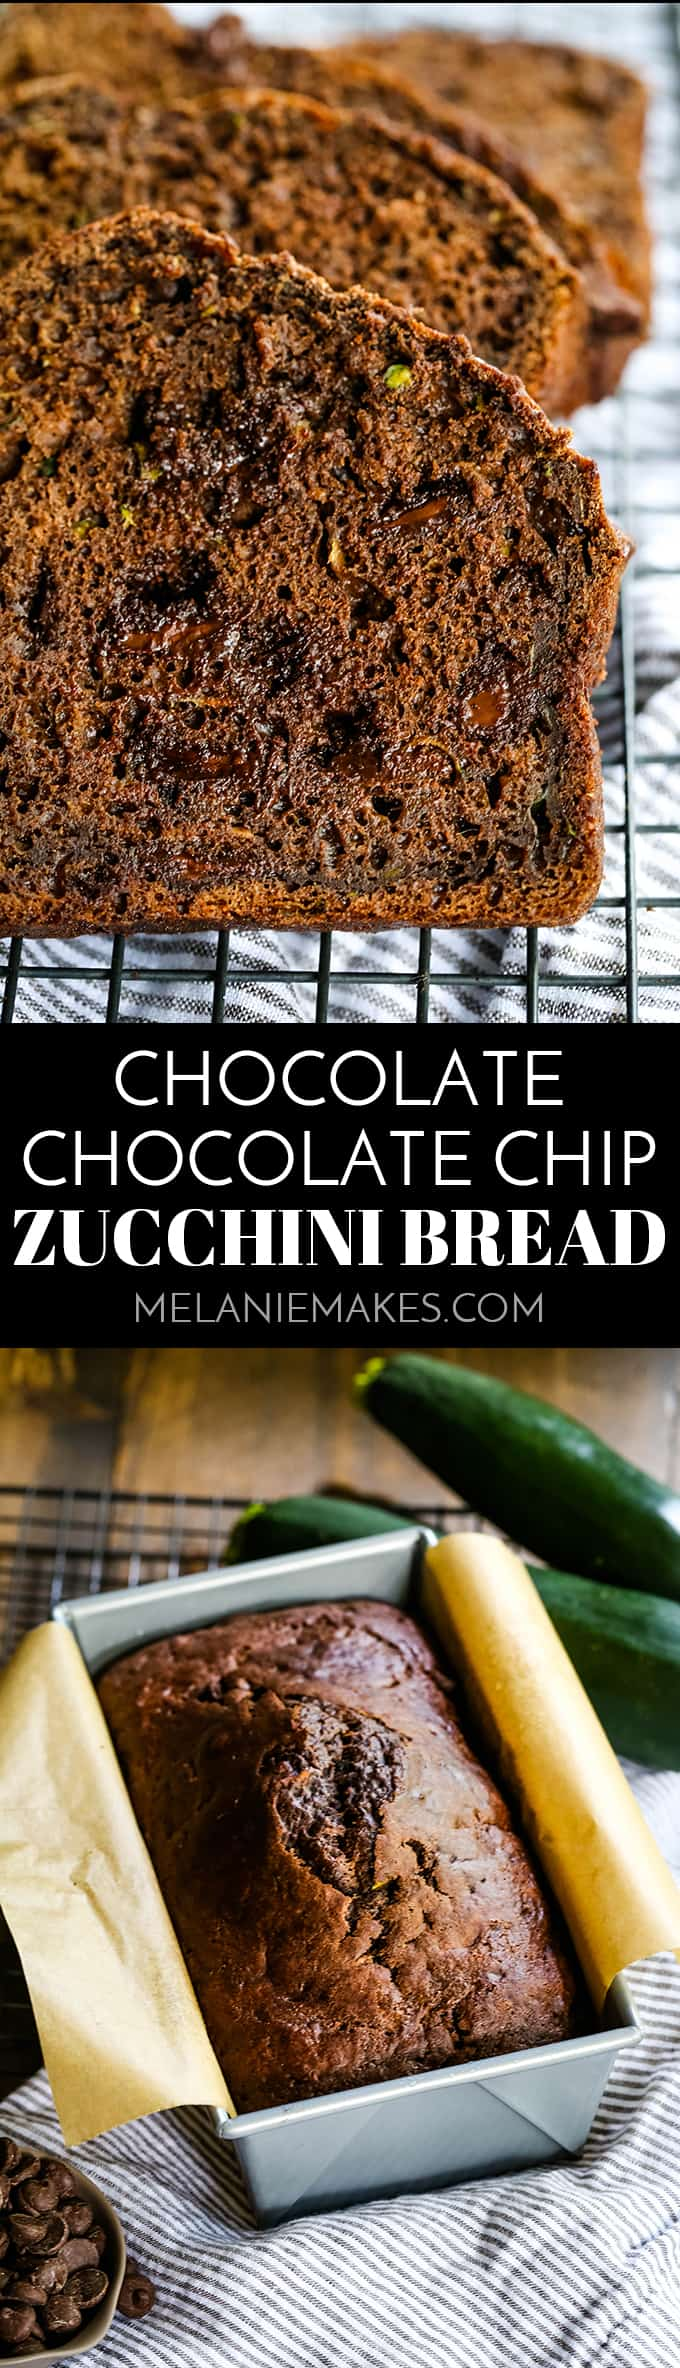 This easy Chocolate Chocolate Chip Zucchini Bread not only has a chocolate batter but is also studded with chocolate chips making it truly decadent! #chocolate #zucchini #bread #baking #easyrecipe